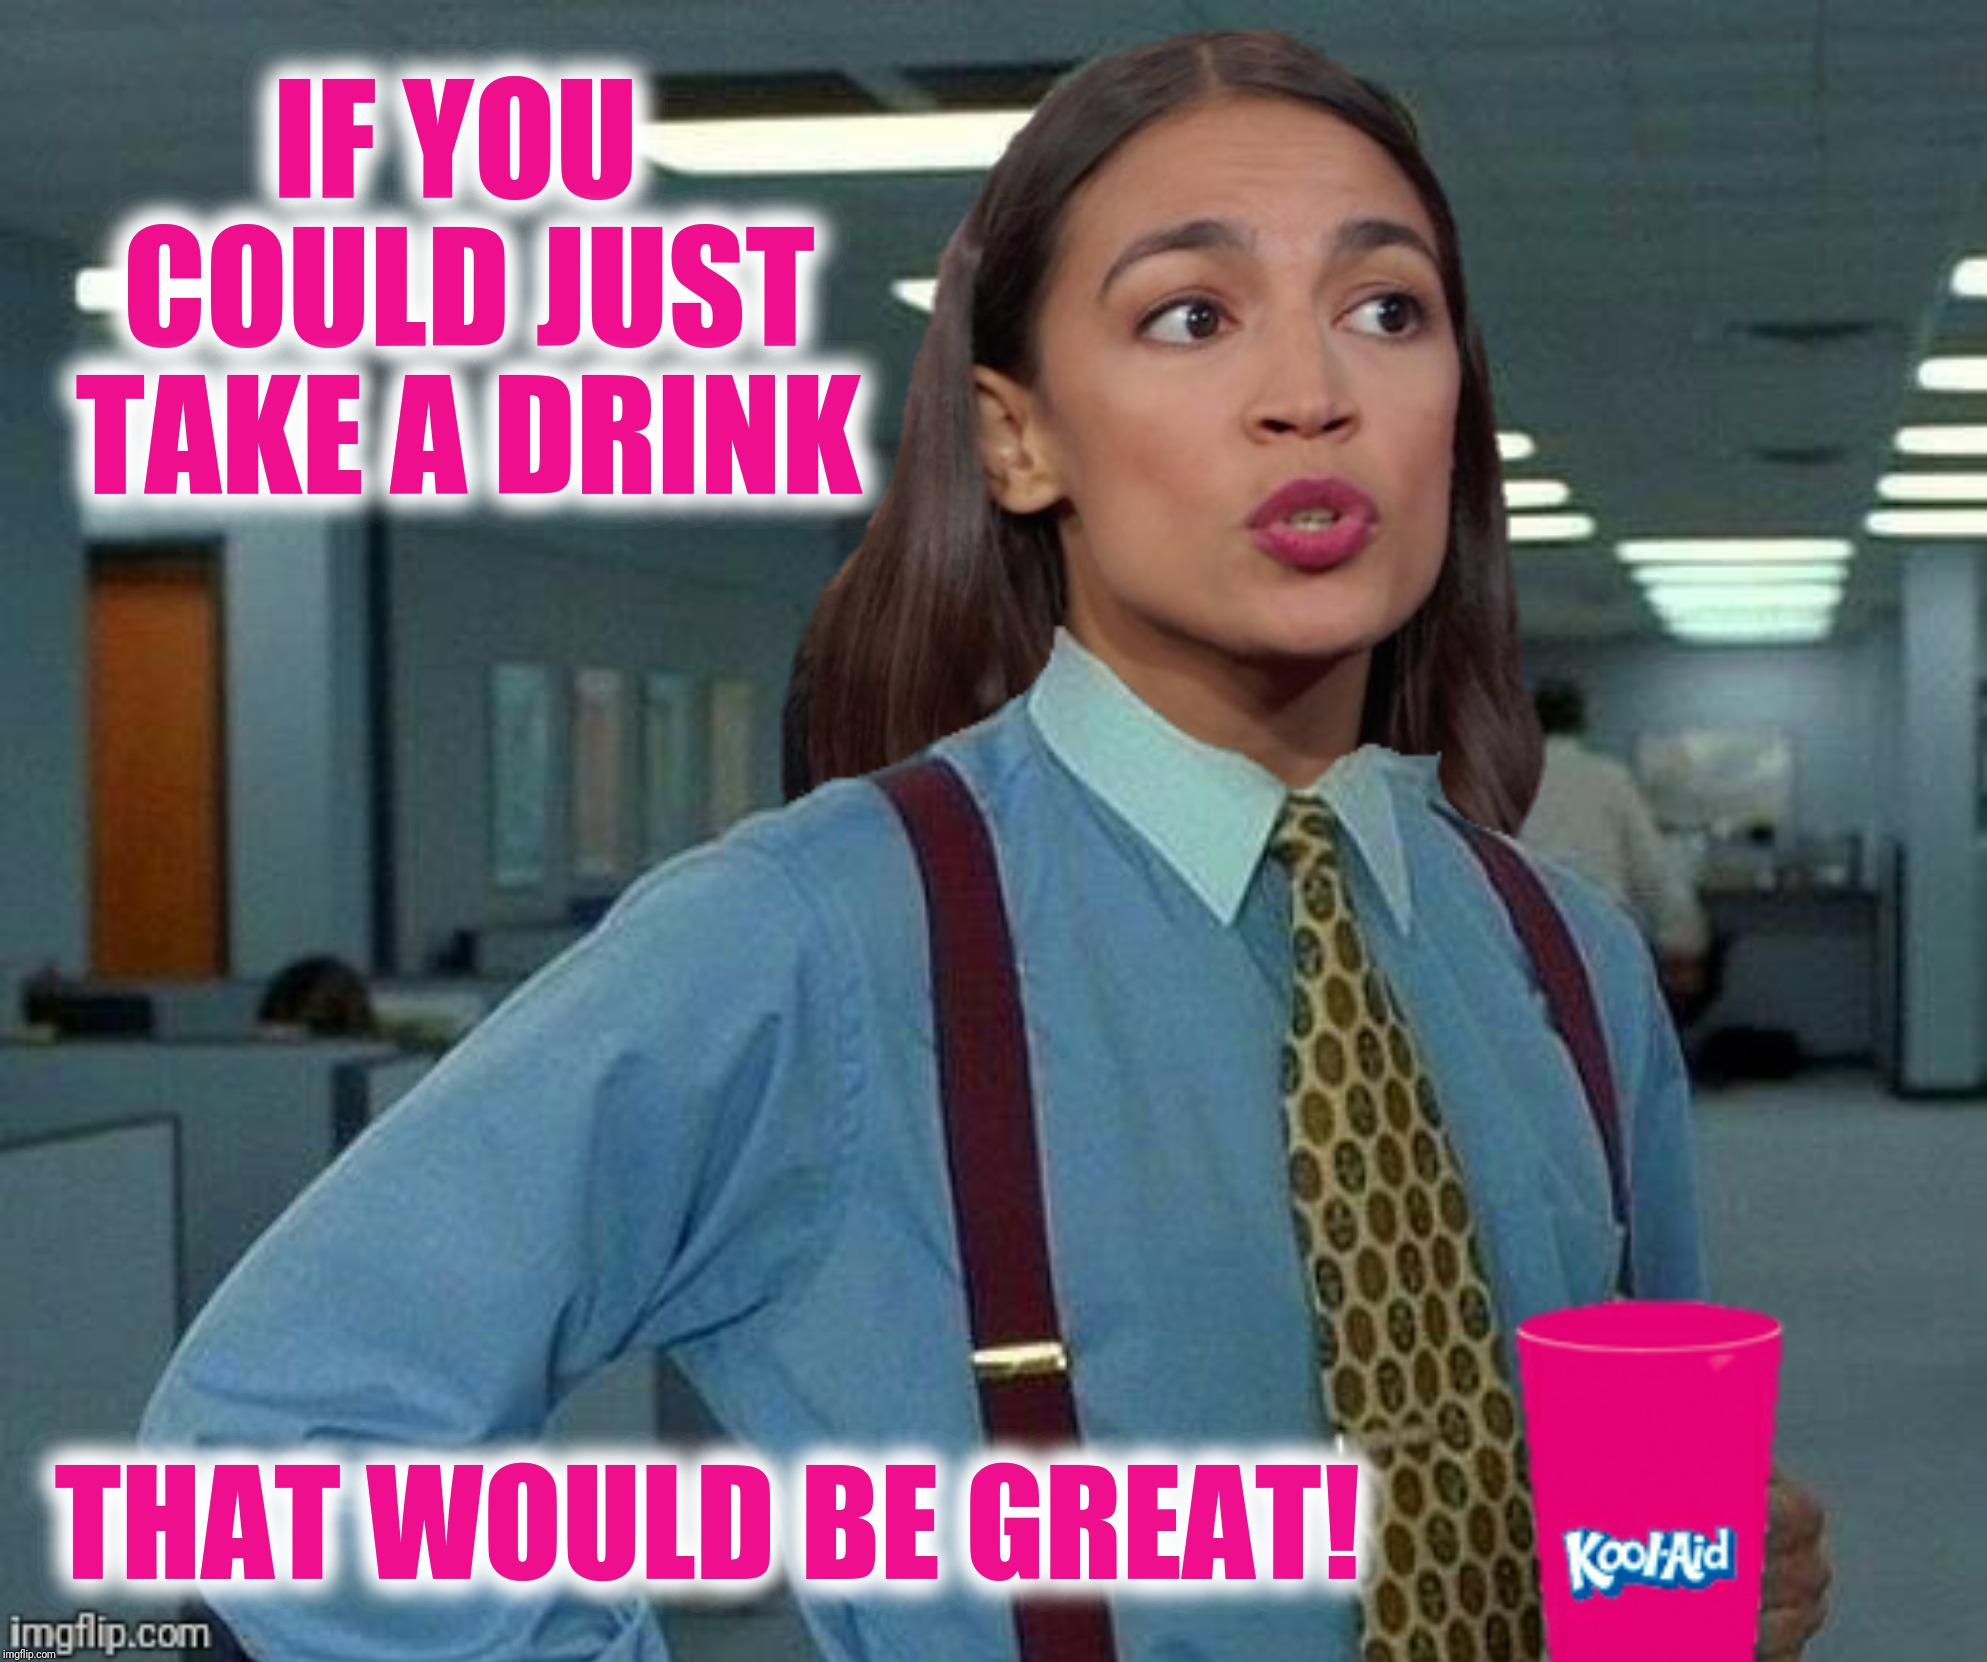 Bottoms up! |  IF YOU COULD JUST TAKE A DRINK; THAT WOULD BE GREAT! | image tagged in office space,alexandria ocasio-cortez,kool aid,that would be great | made w/ Imgflip meme maker